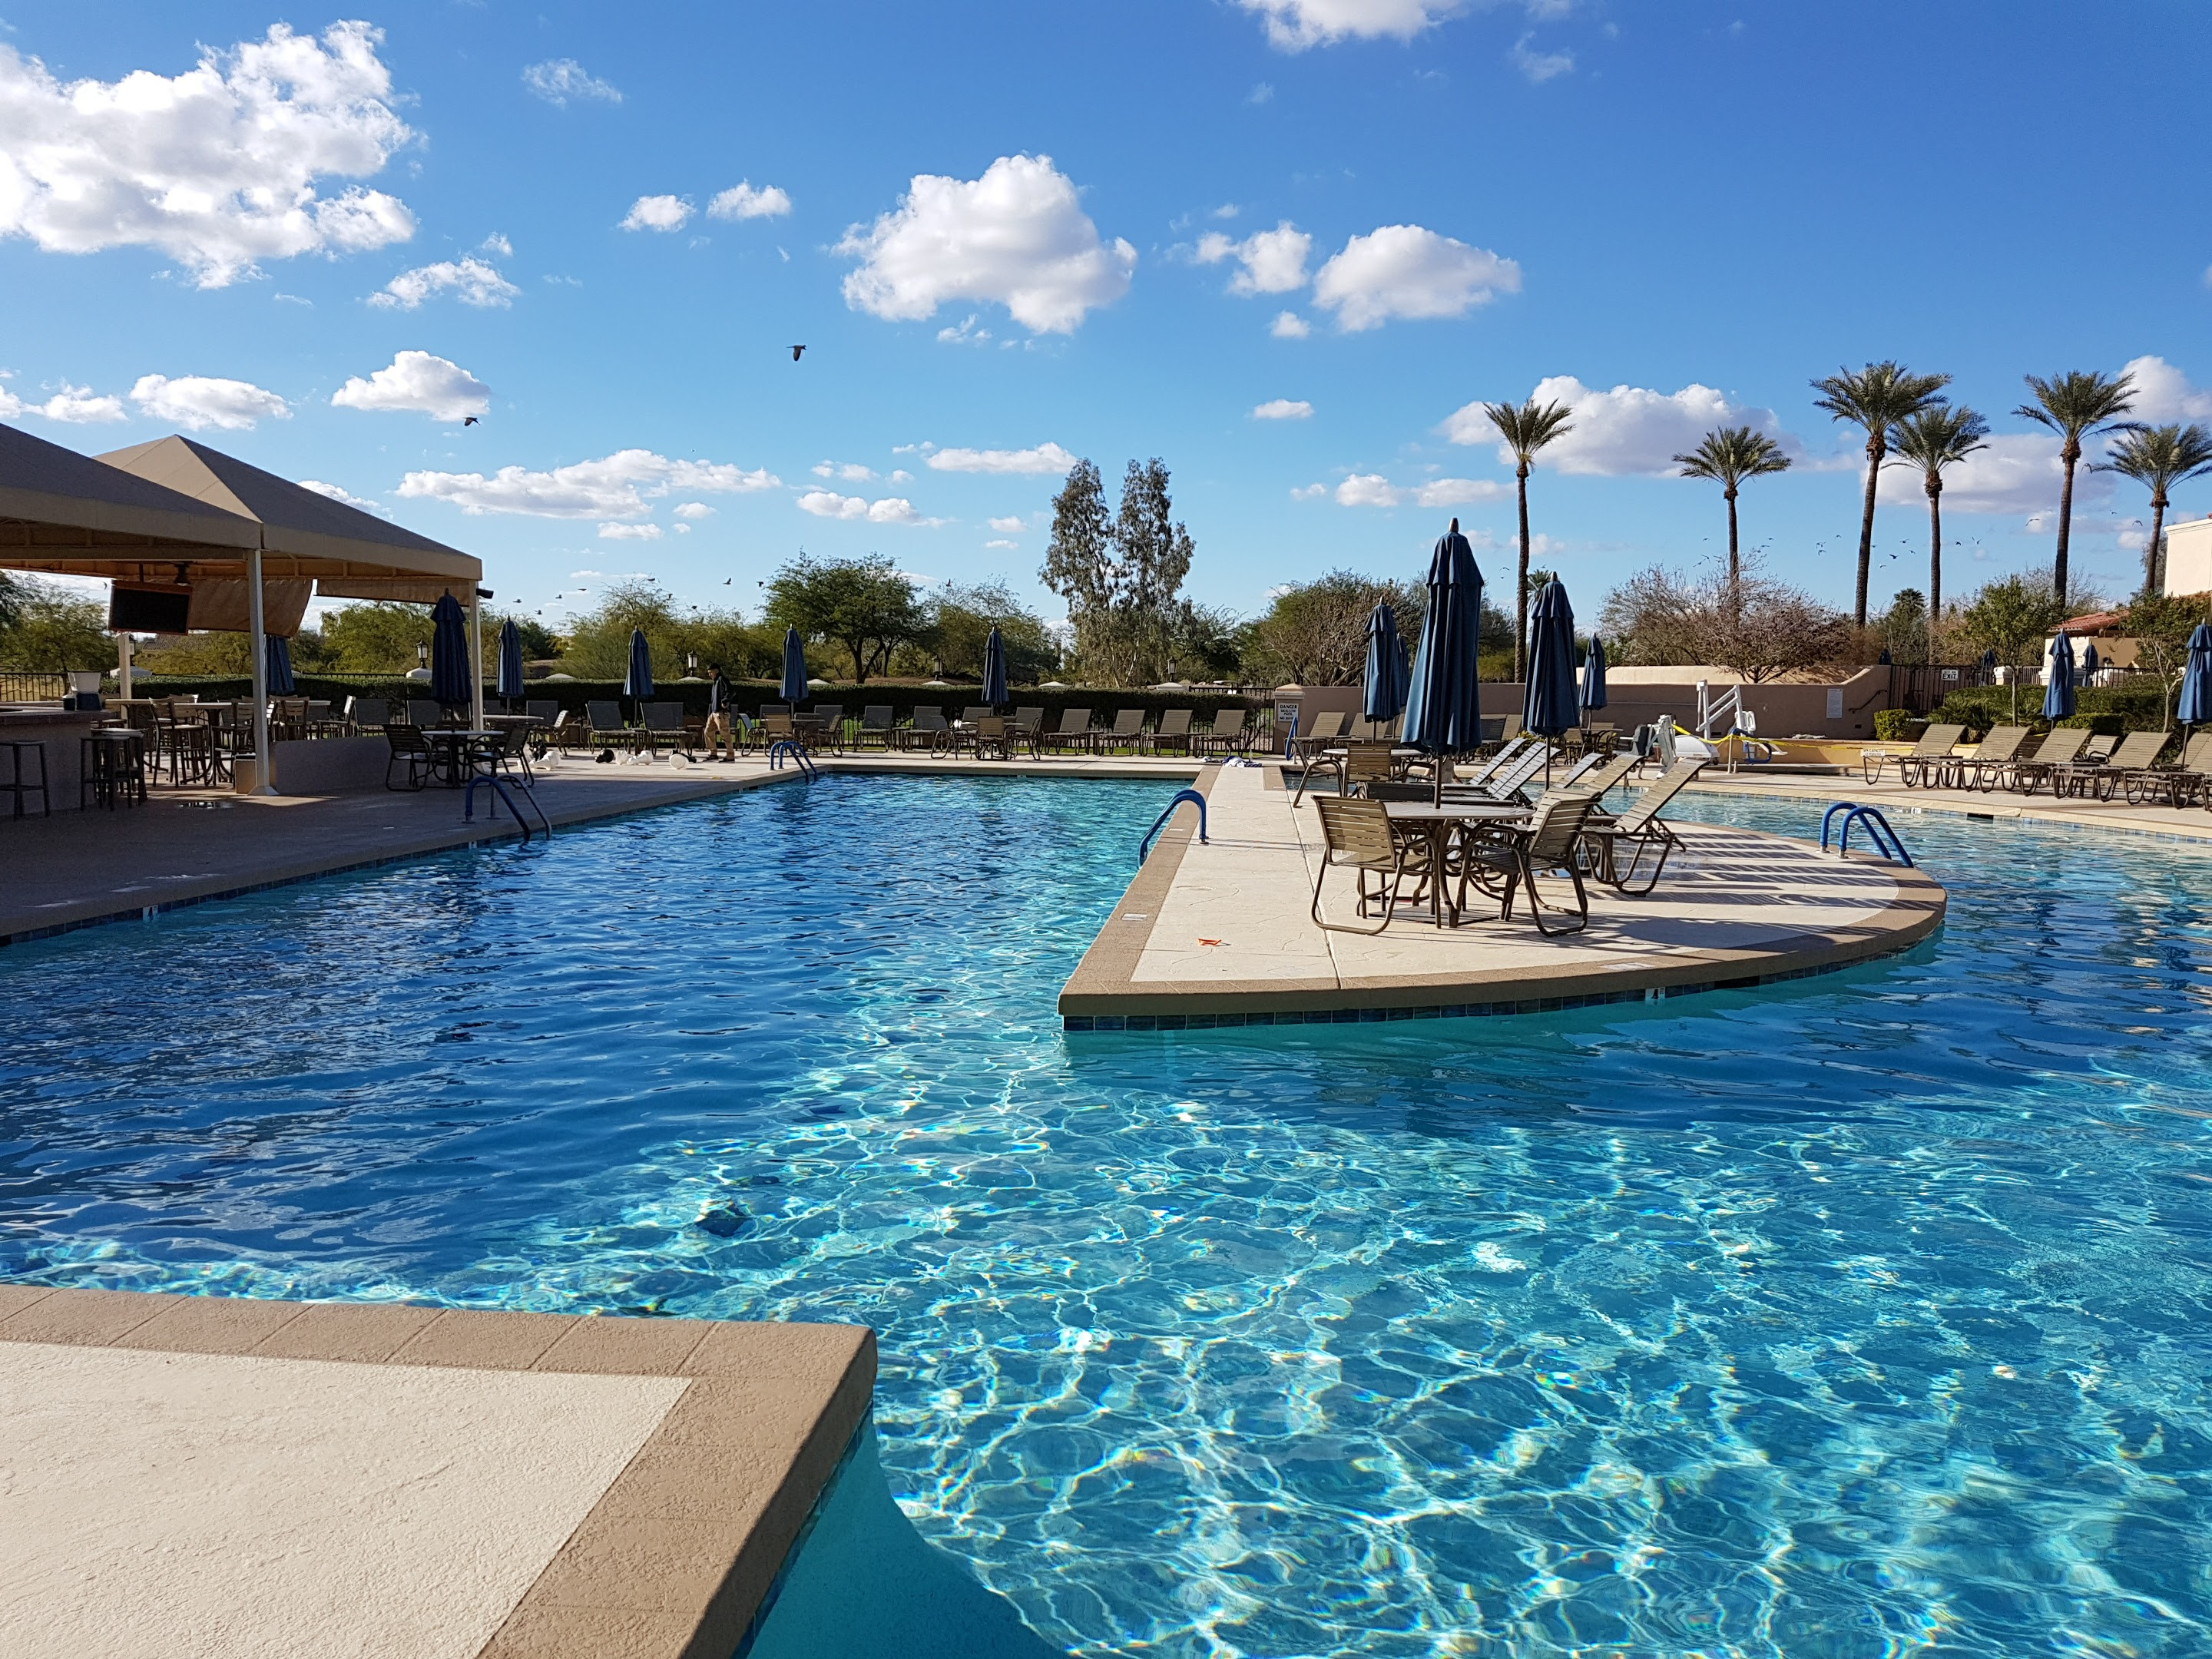 Shell Vacations Club Legacy Golf Resort Timeshare Users Group - Shellvacationsclub